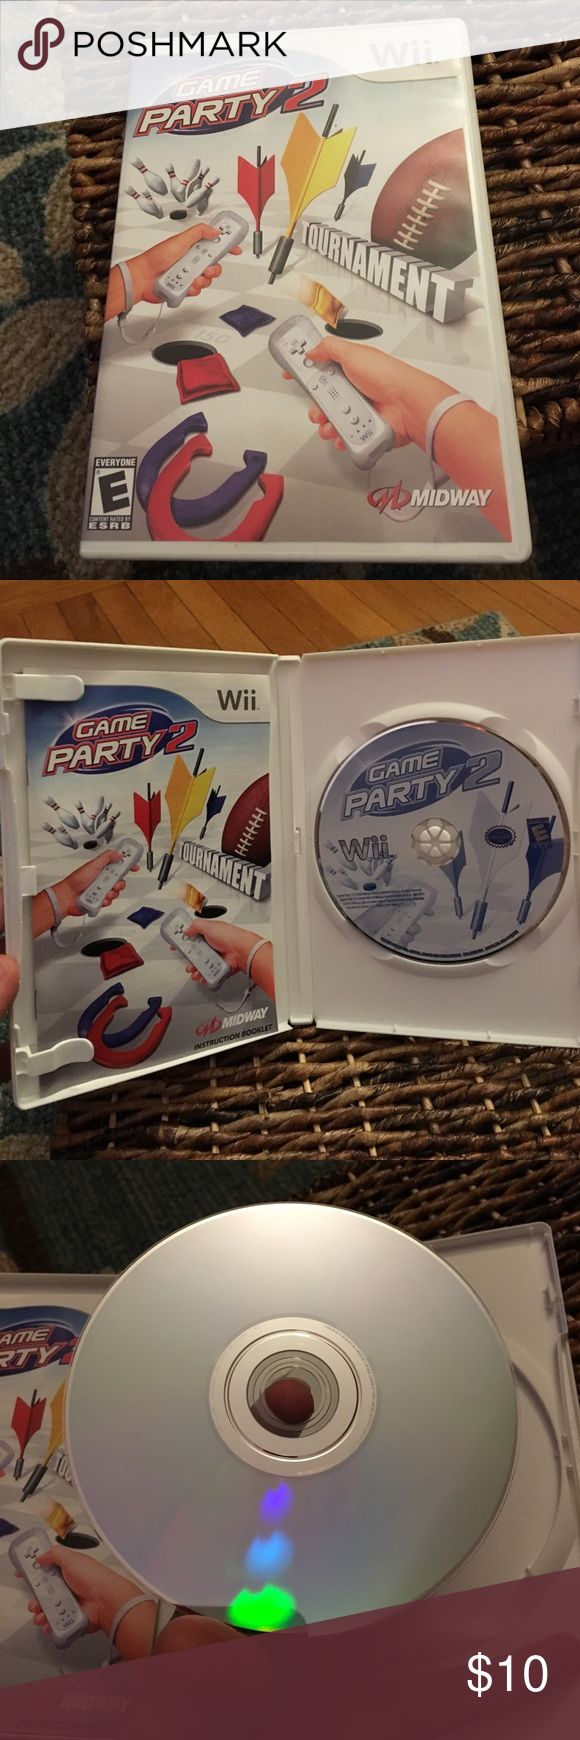 Wii Game Party 2 game Barely used wii game. No scratches. Includes bowling, darts, football, horseshoes, Trivia and more (11 games) Other